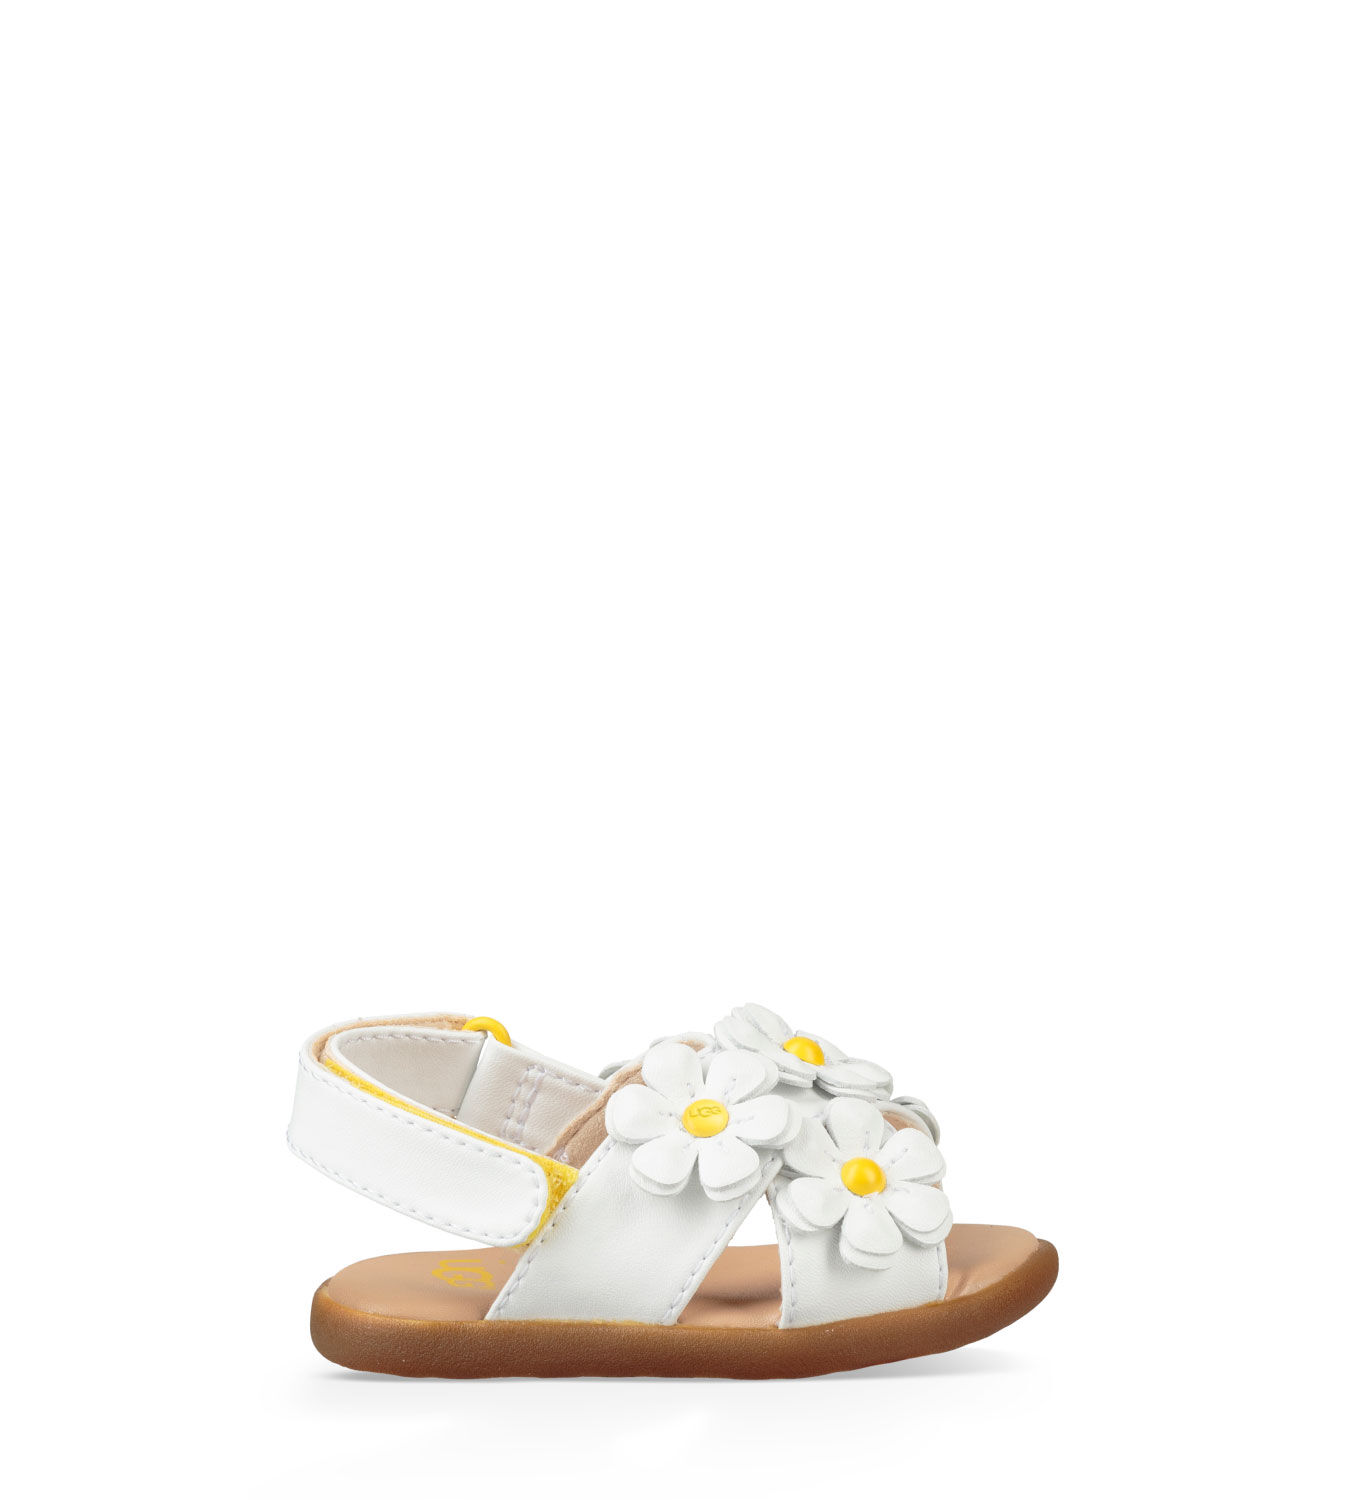 ugg fluffy sandals for women nz